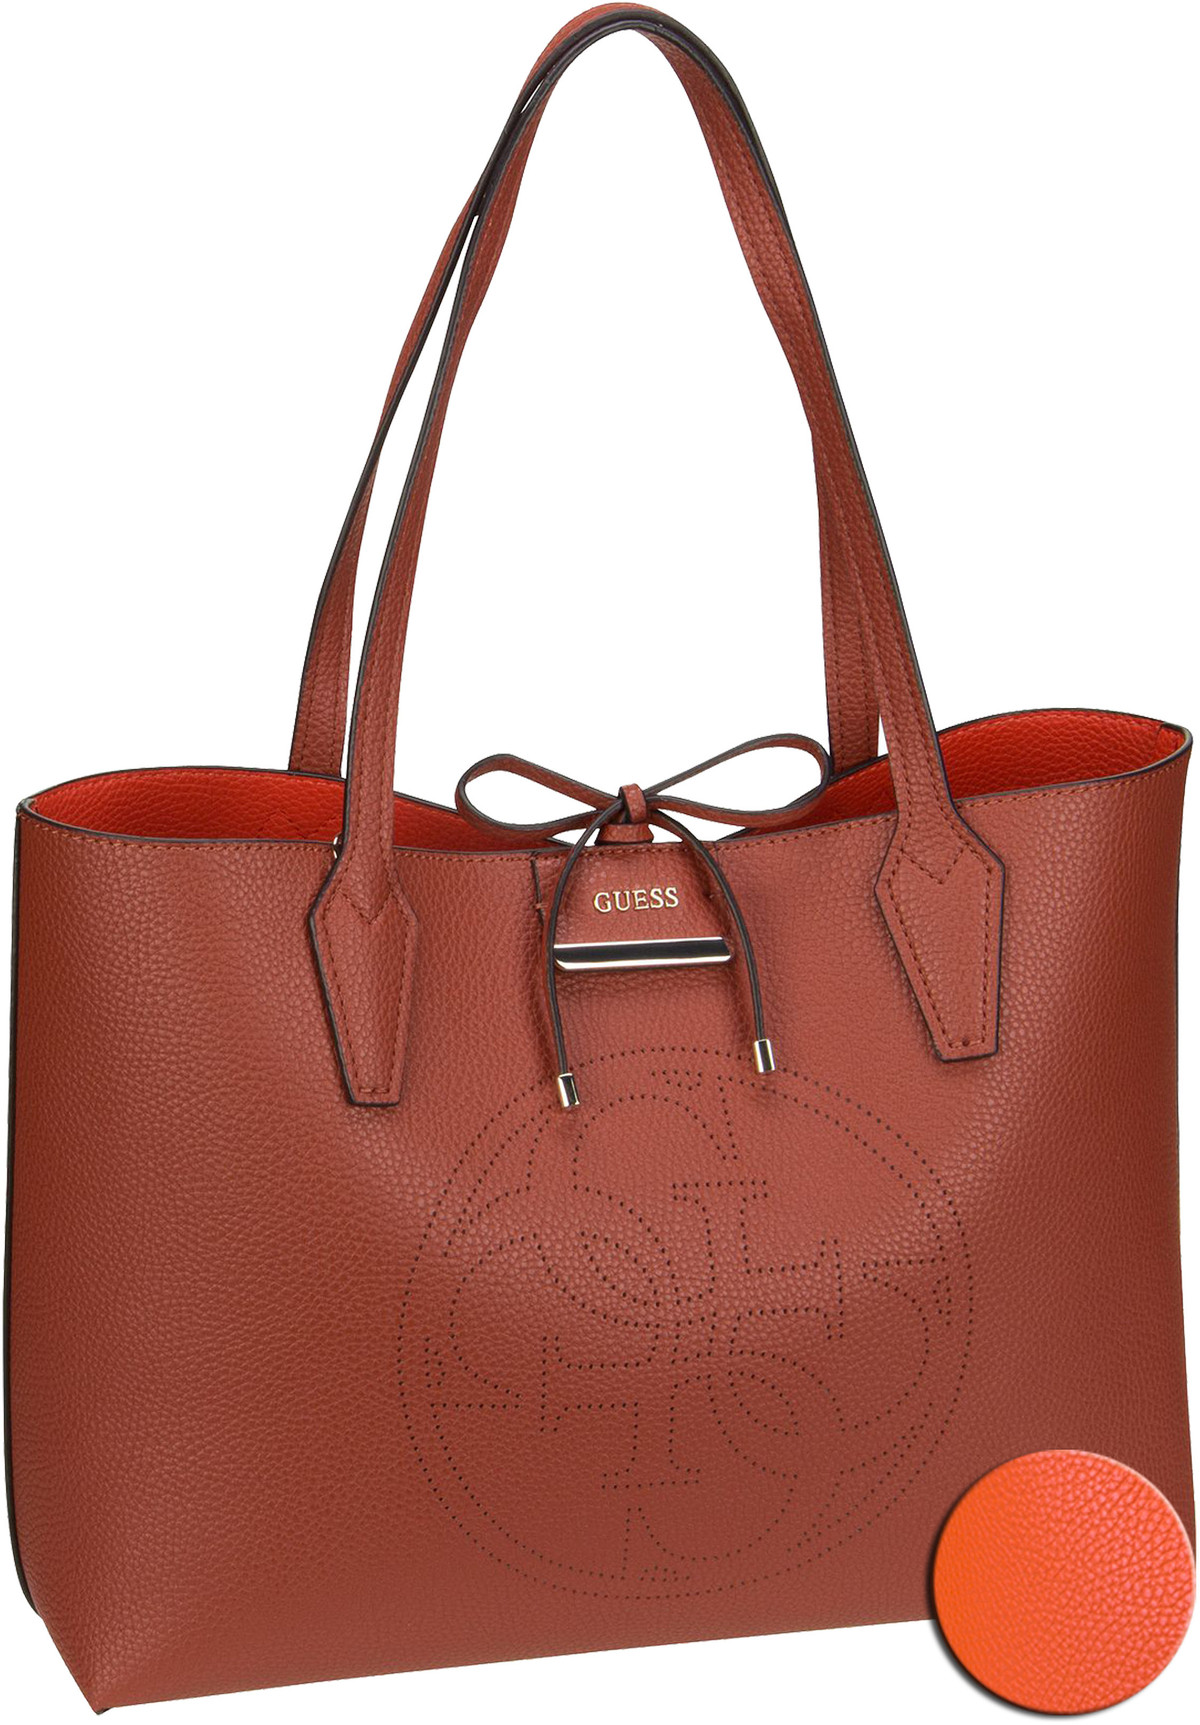 Handtasche Bobbi AA Inside Out Tote Cognac/Spice (innen: Orange )